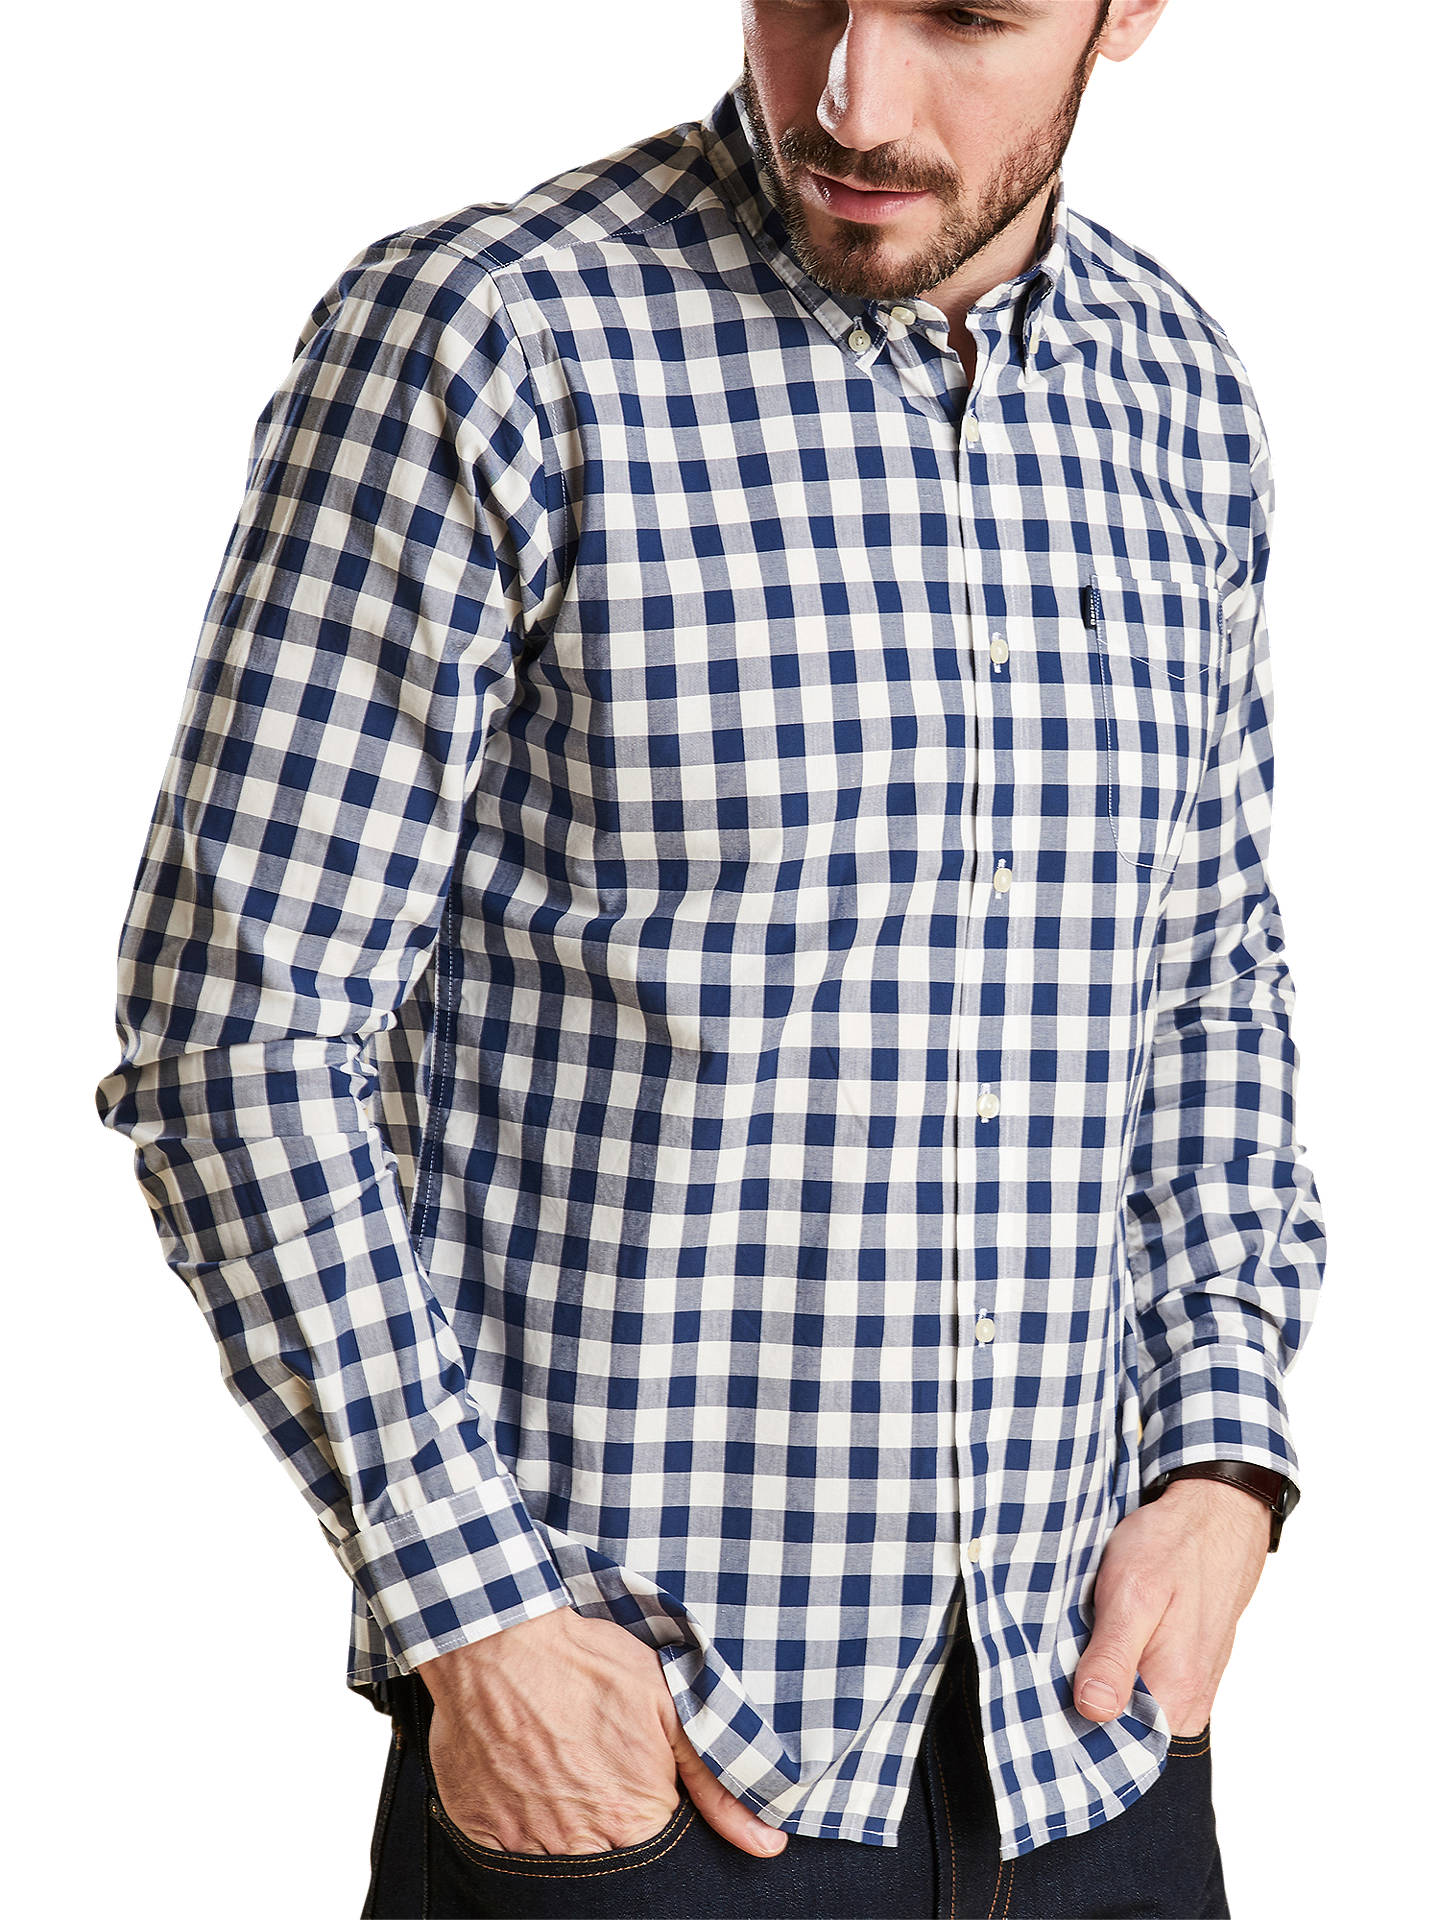 Buy Barbour Endsleigh Gingham Shirt, Blue/White, L Online at johnlewis.com